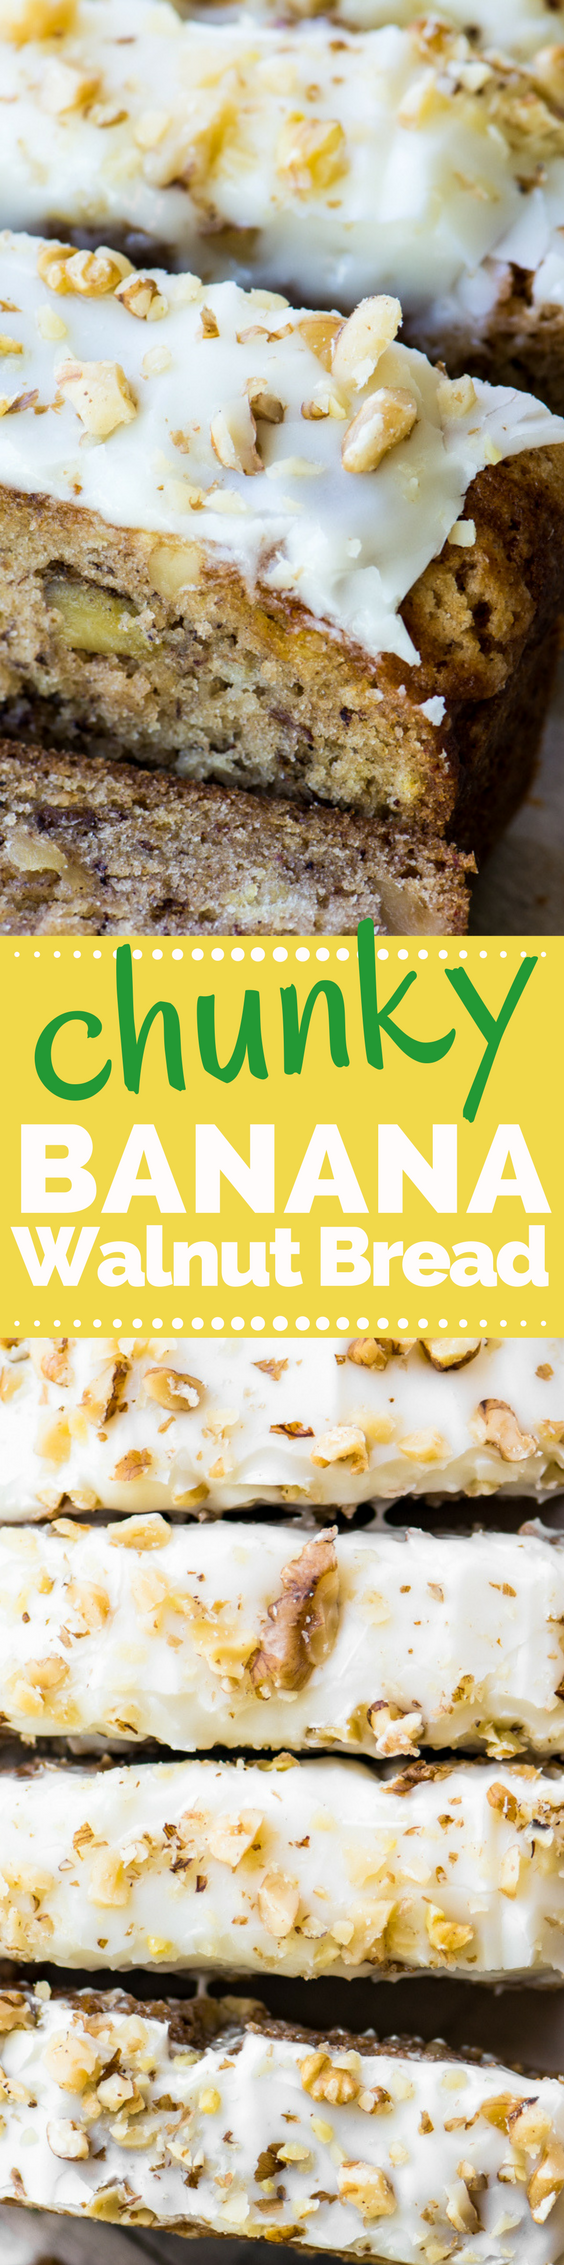 Better than Starbucks Banana Walnut Bread (with cream cheese frosting!) #bananabread #starbucks #starbuckscopycat #bananaloaf #bananacake #quickbread #coffeecake #creamcheesefrosting #dessert #banananutbread #bestbananabread #easybananabread